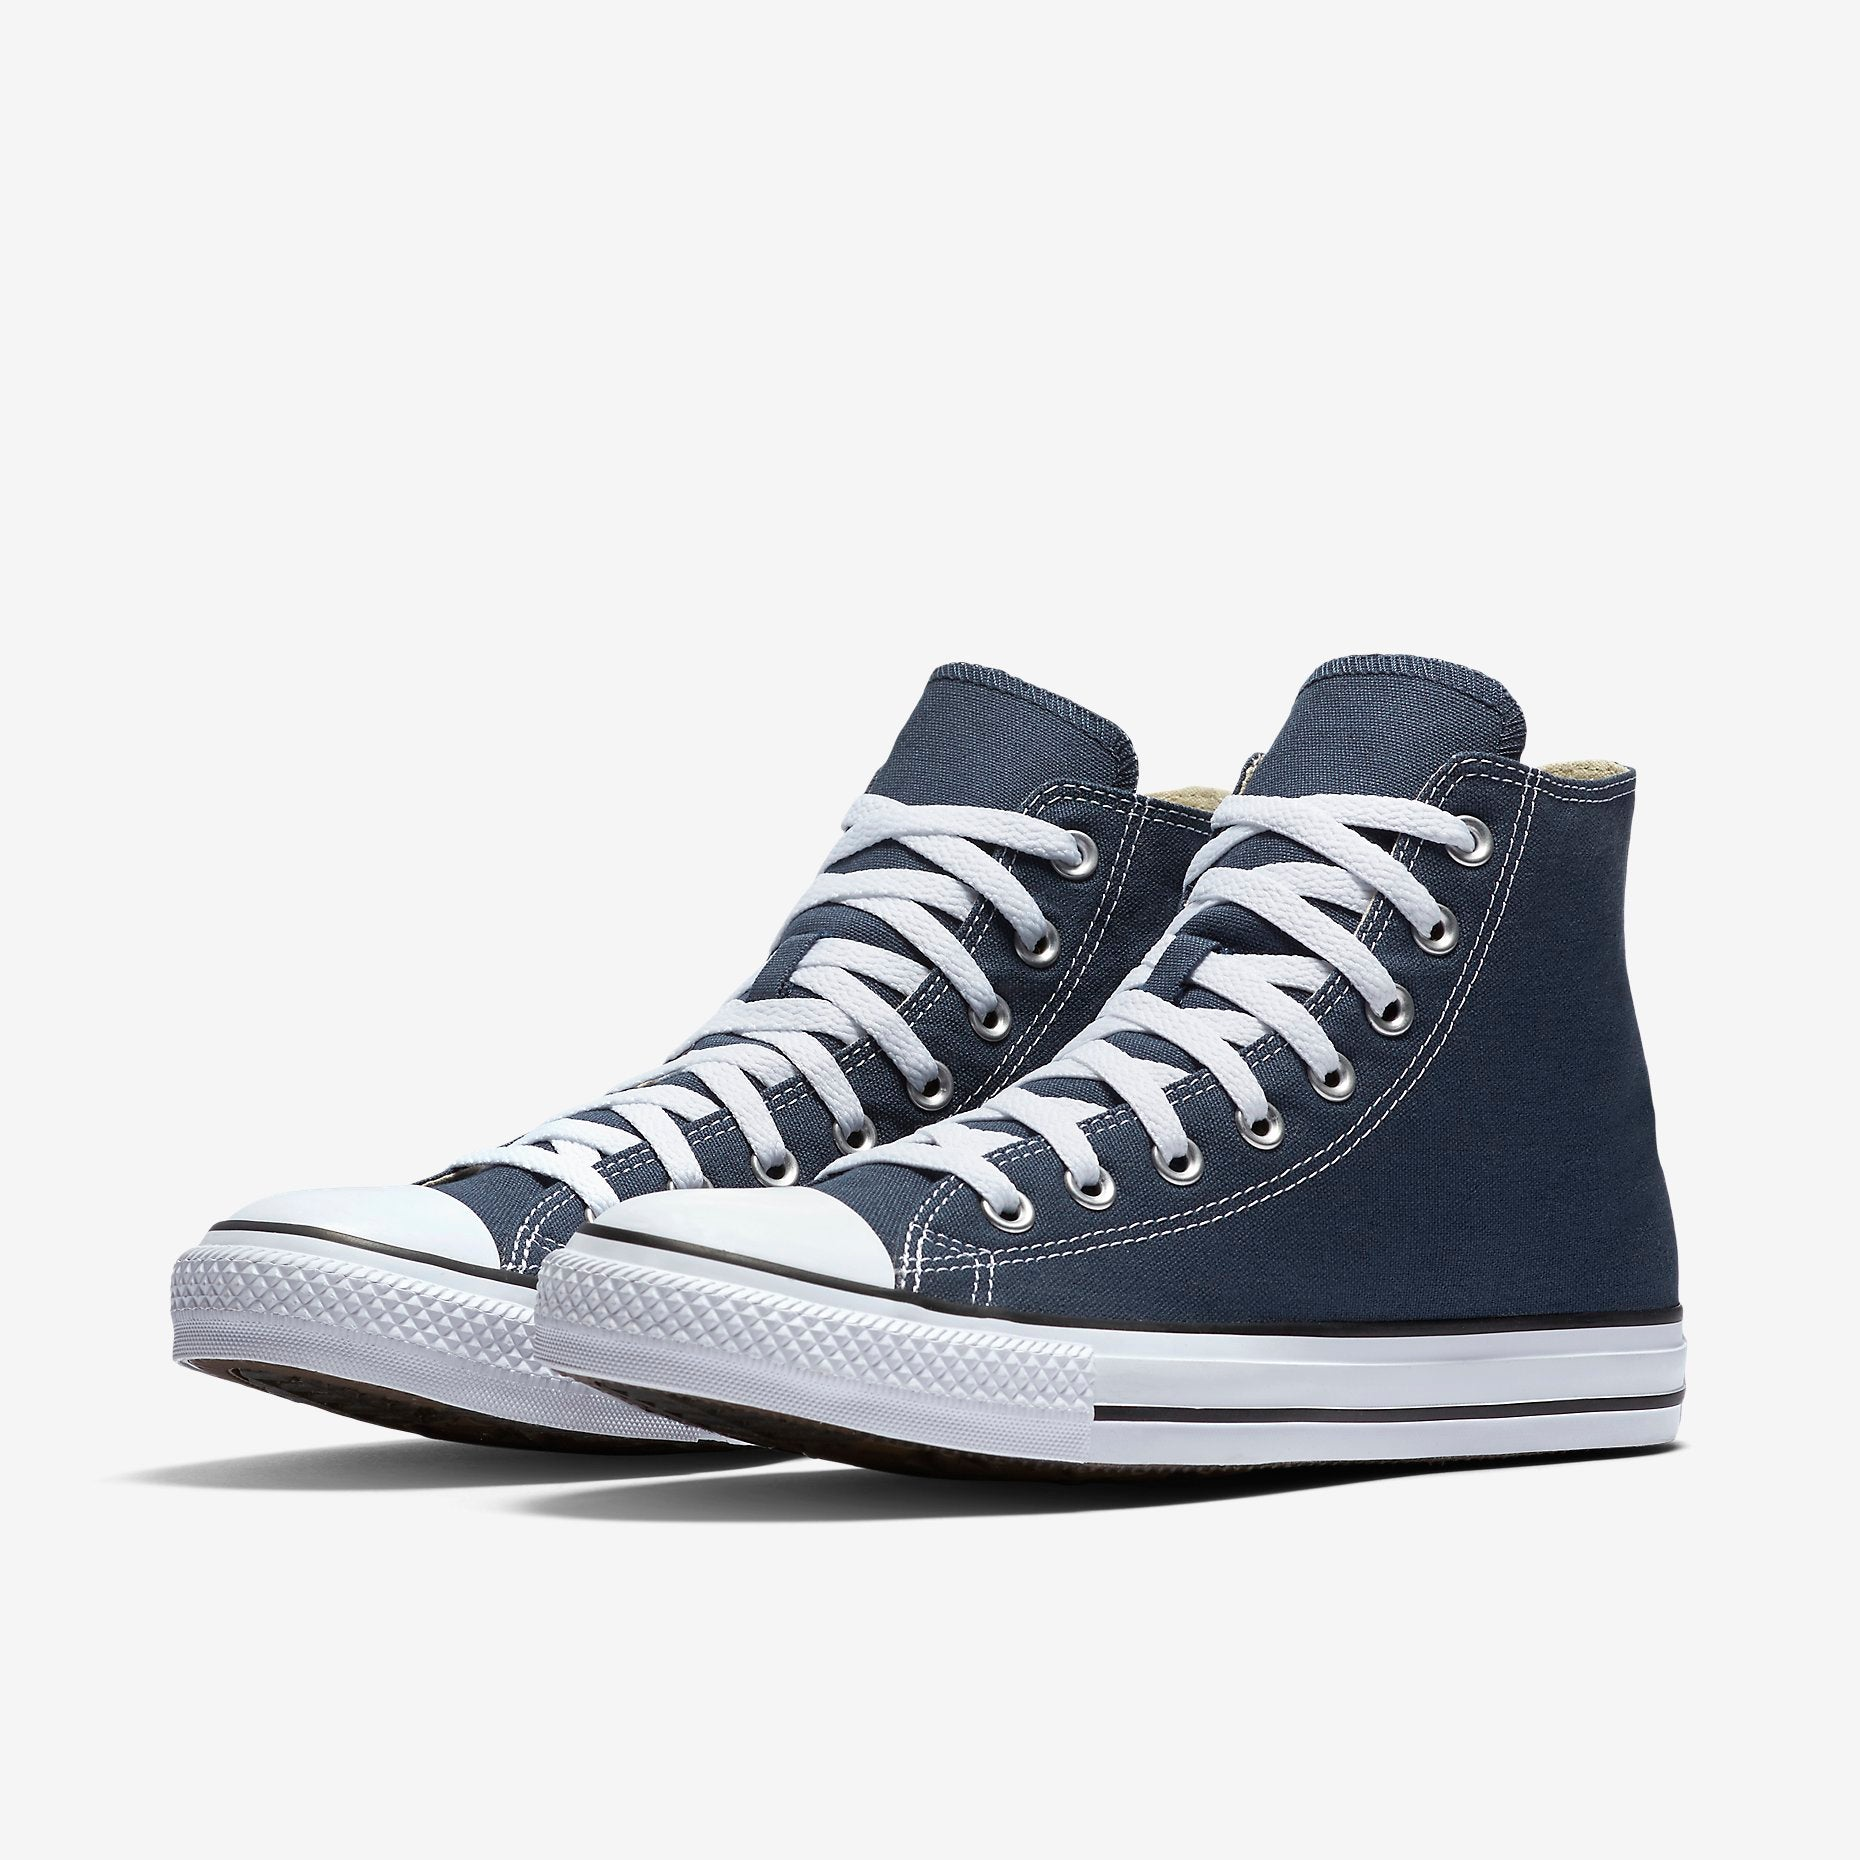 Taylor Star Navy Chuck All Converse High Unisex Top LpUzVjqSMG